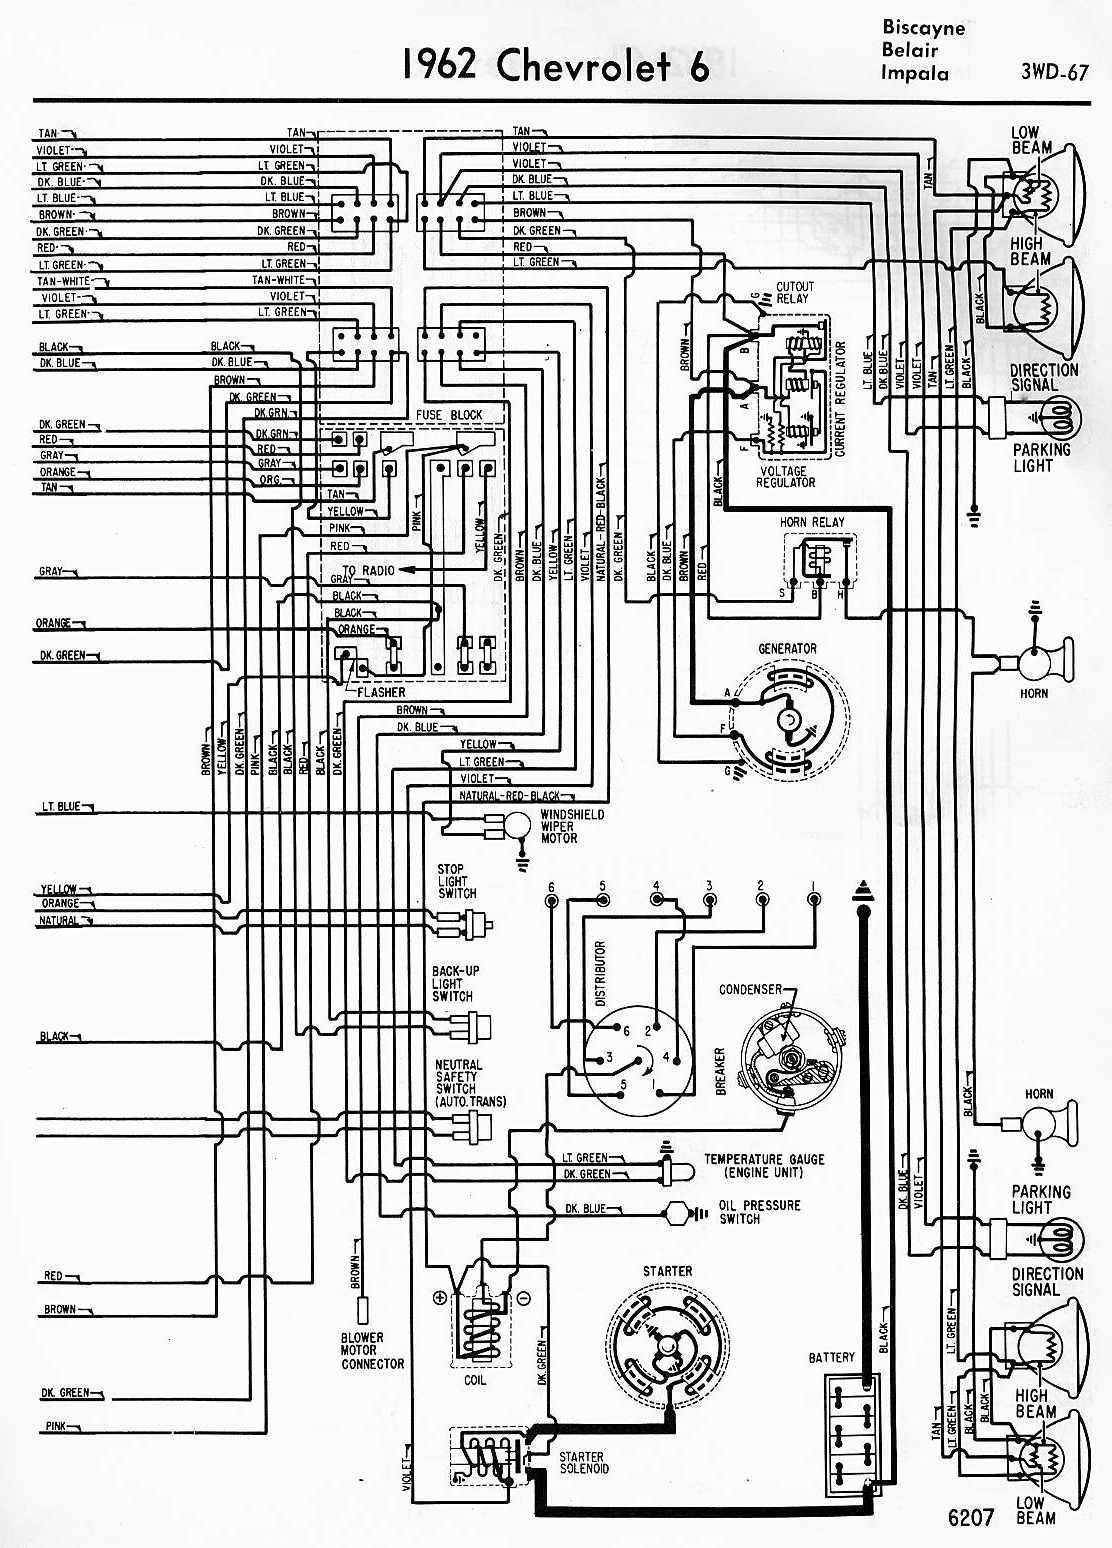 1958 Imperial Wiring Diagram Libraries Free Diagrams Weebly 2002 Cadilac Escalade 67 Window Diagramswiring 68 1962 Lebaron 1968